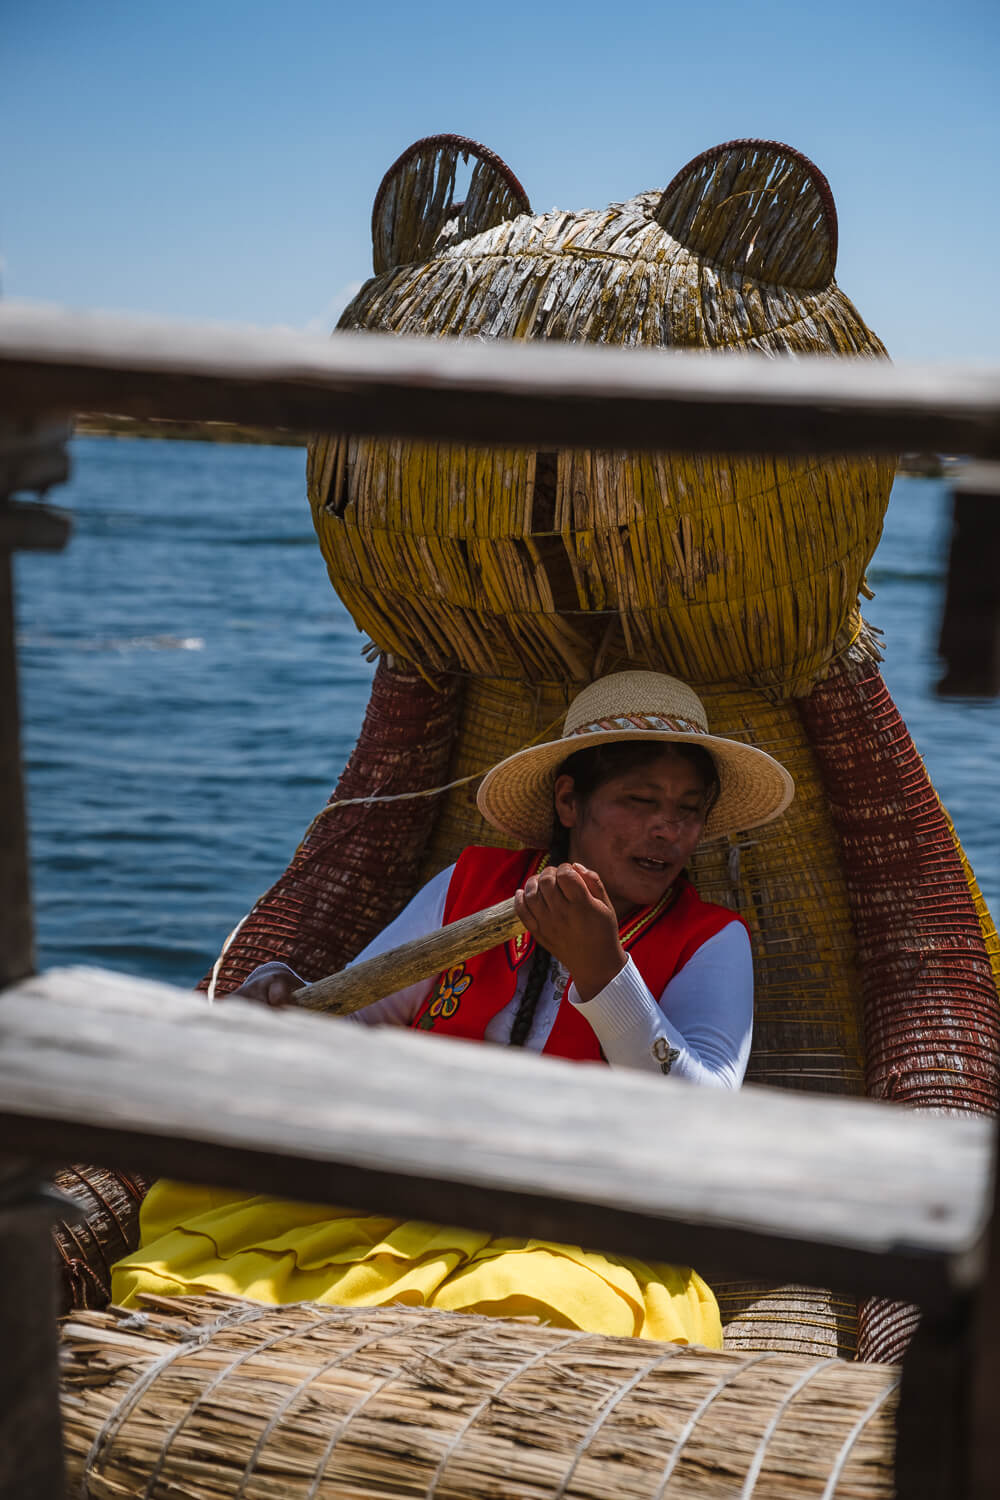 """Woman from Uros Island rowing the reed boat. Travel photography and guide by © Natasha Lequepeys for """"And Then I Met Yoko"""". #peru #laketiticaca #amantani #taquile #homestay #culturalexperience #photoblog #travelblog #travelphotography #fujifilm #travel #travelperu #southamerica #allwaystravel #laketiticacaitinerary #puno #uros #floatingislands #pachamama #pachatata"""